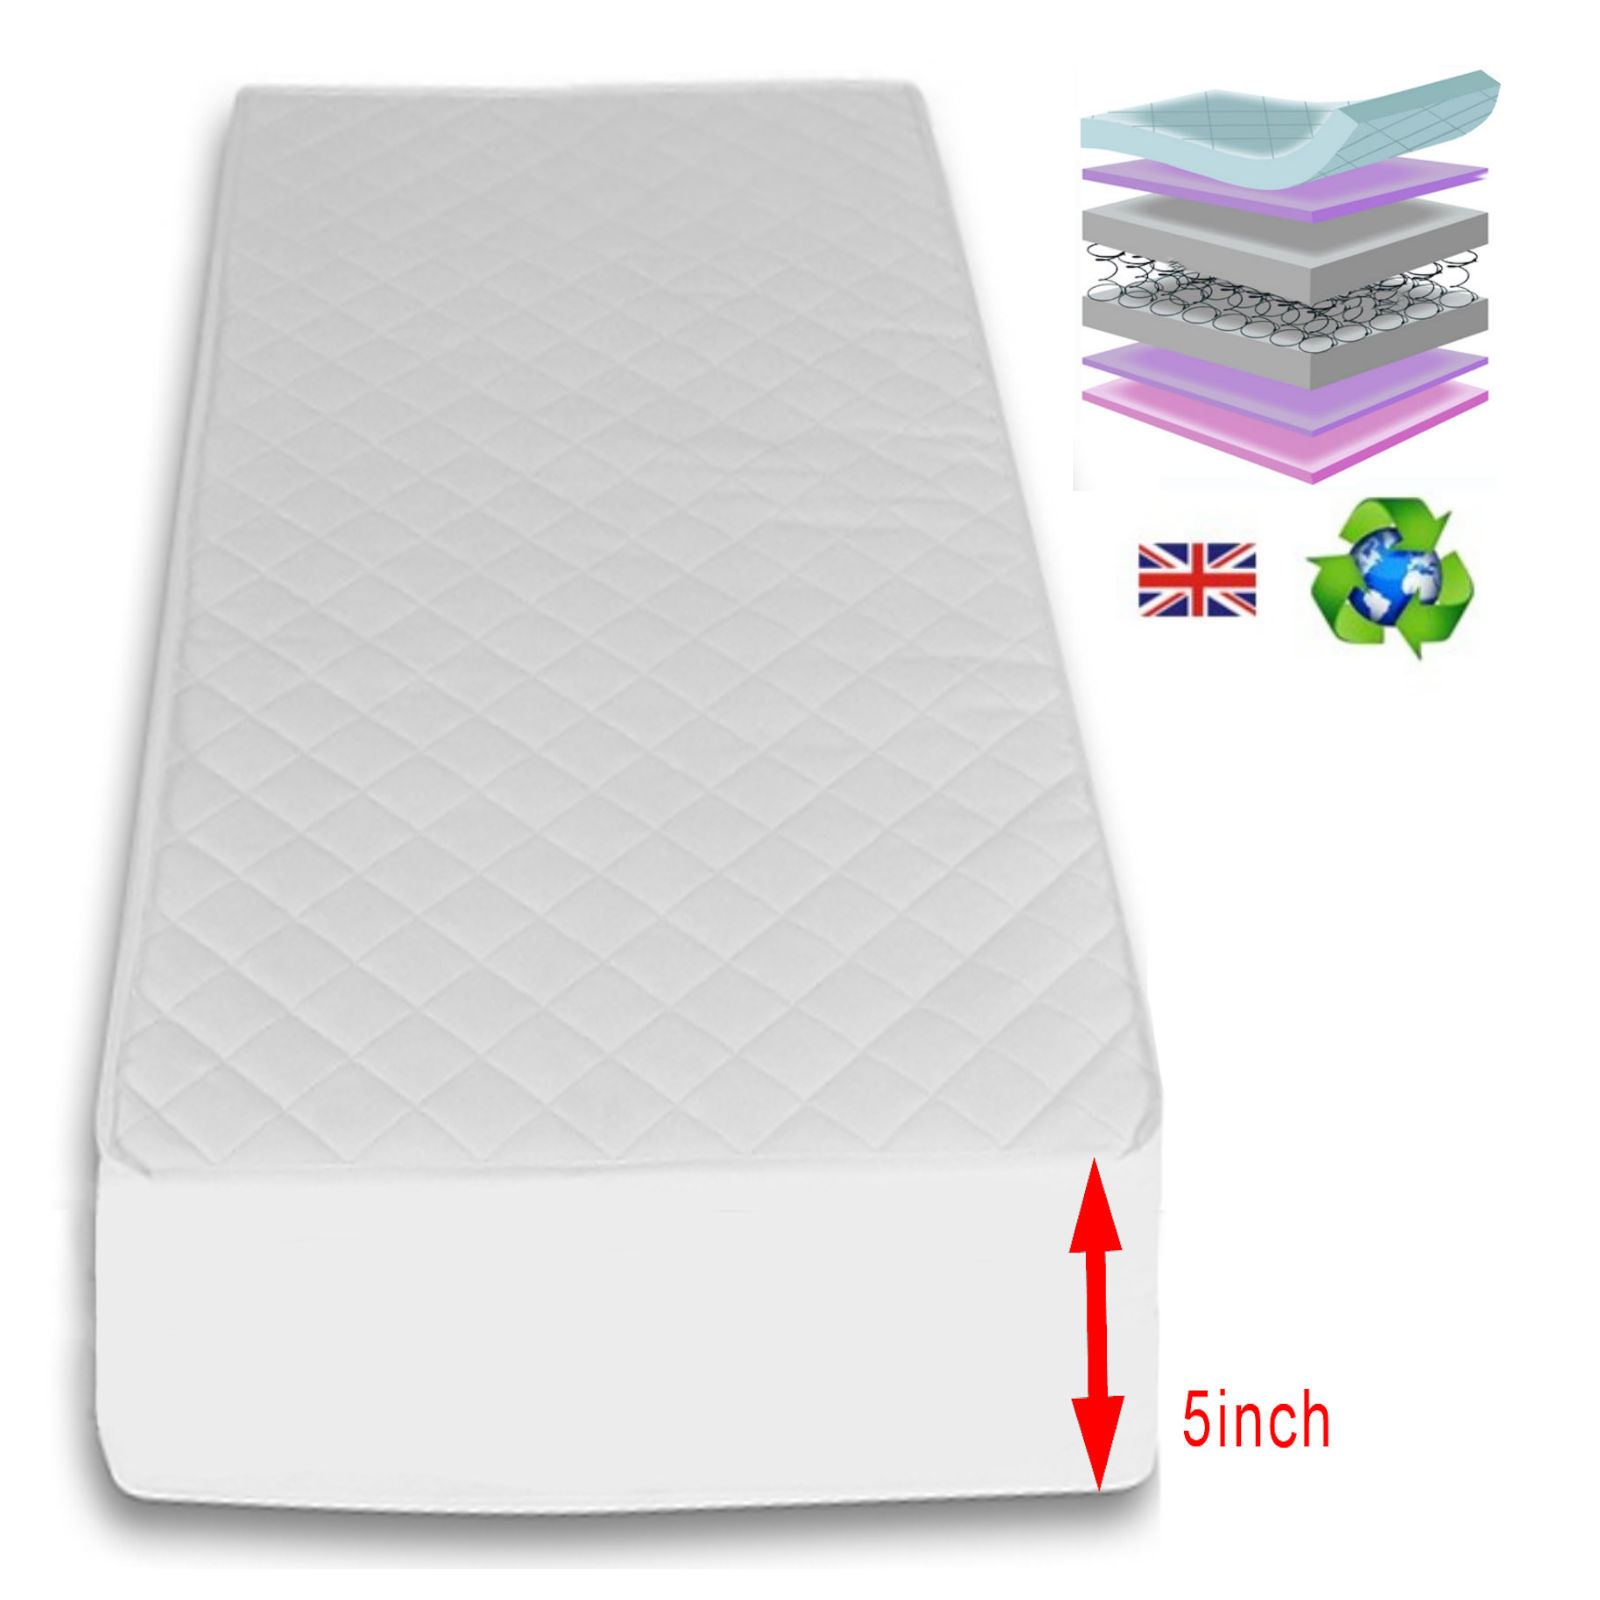 38 X 89cm Crib Mattress Mattresses Online4baby